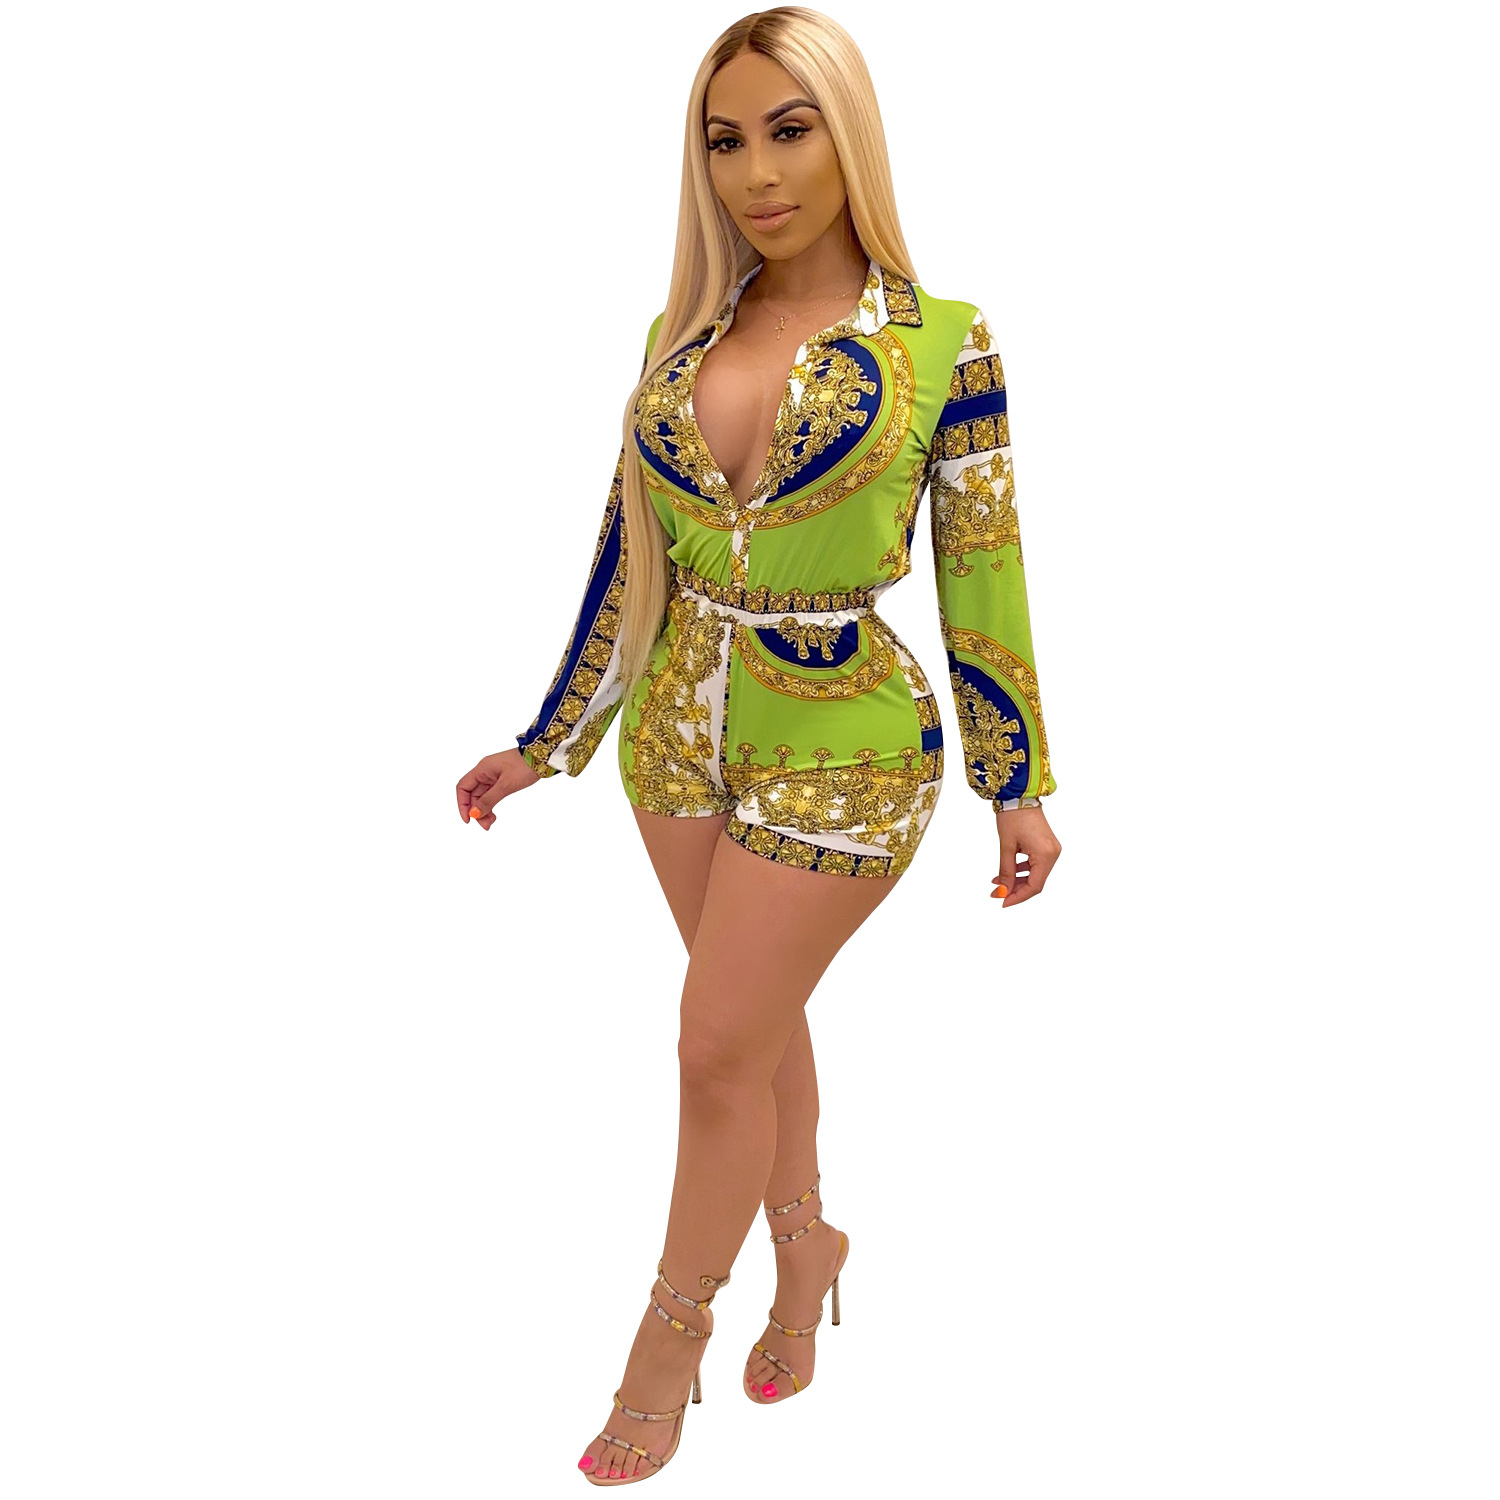 Zoctuo Playsuit Women V Neck Sexy Jumpsuit Summer Autumn 2020 Long Sleeve Print Party Club Button Jumpsuits Shorts